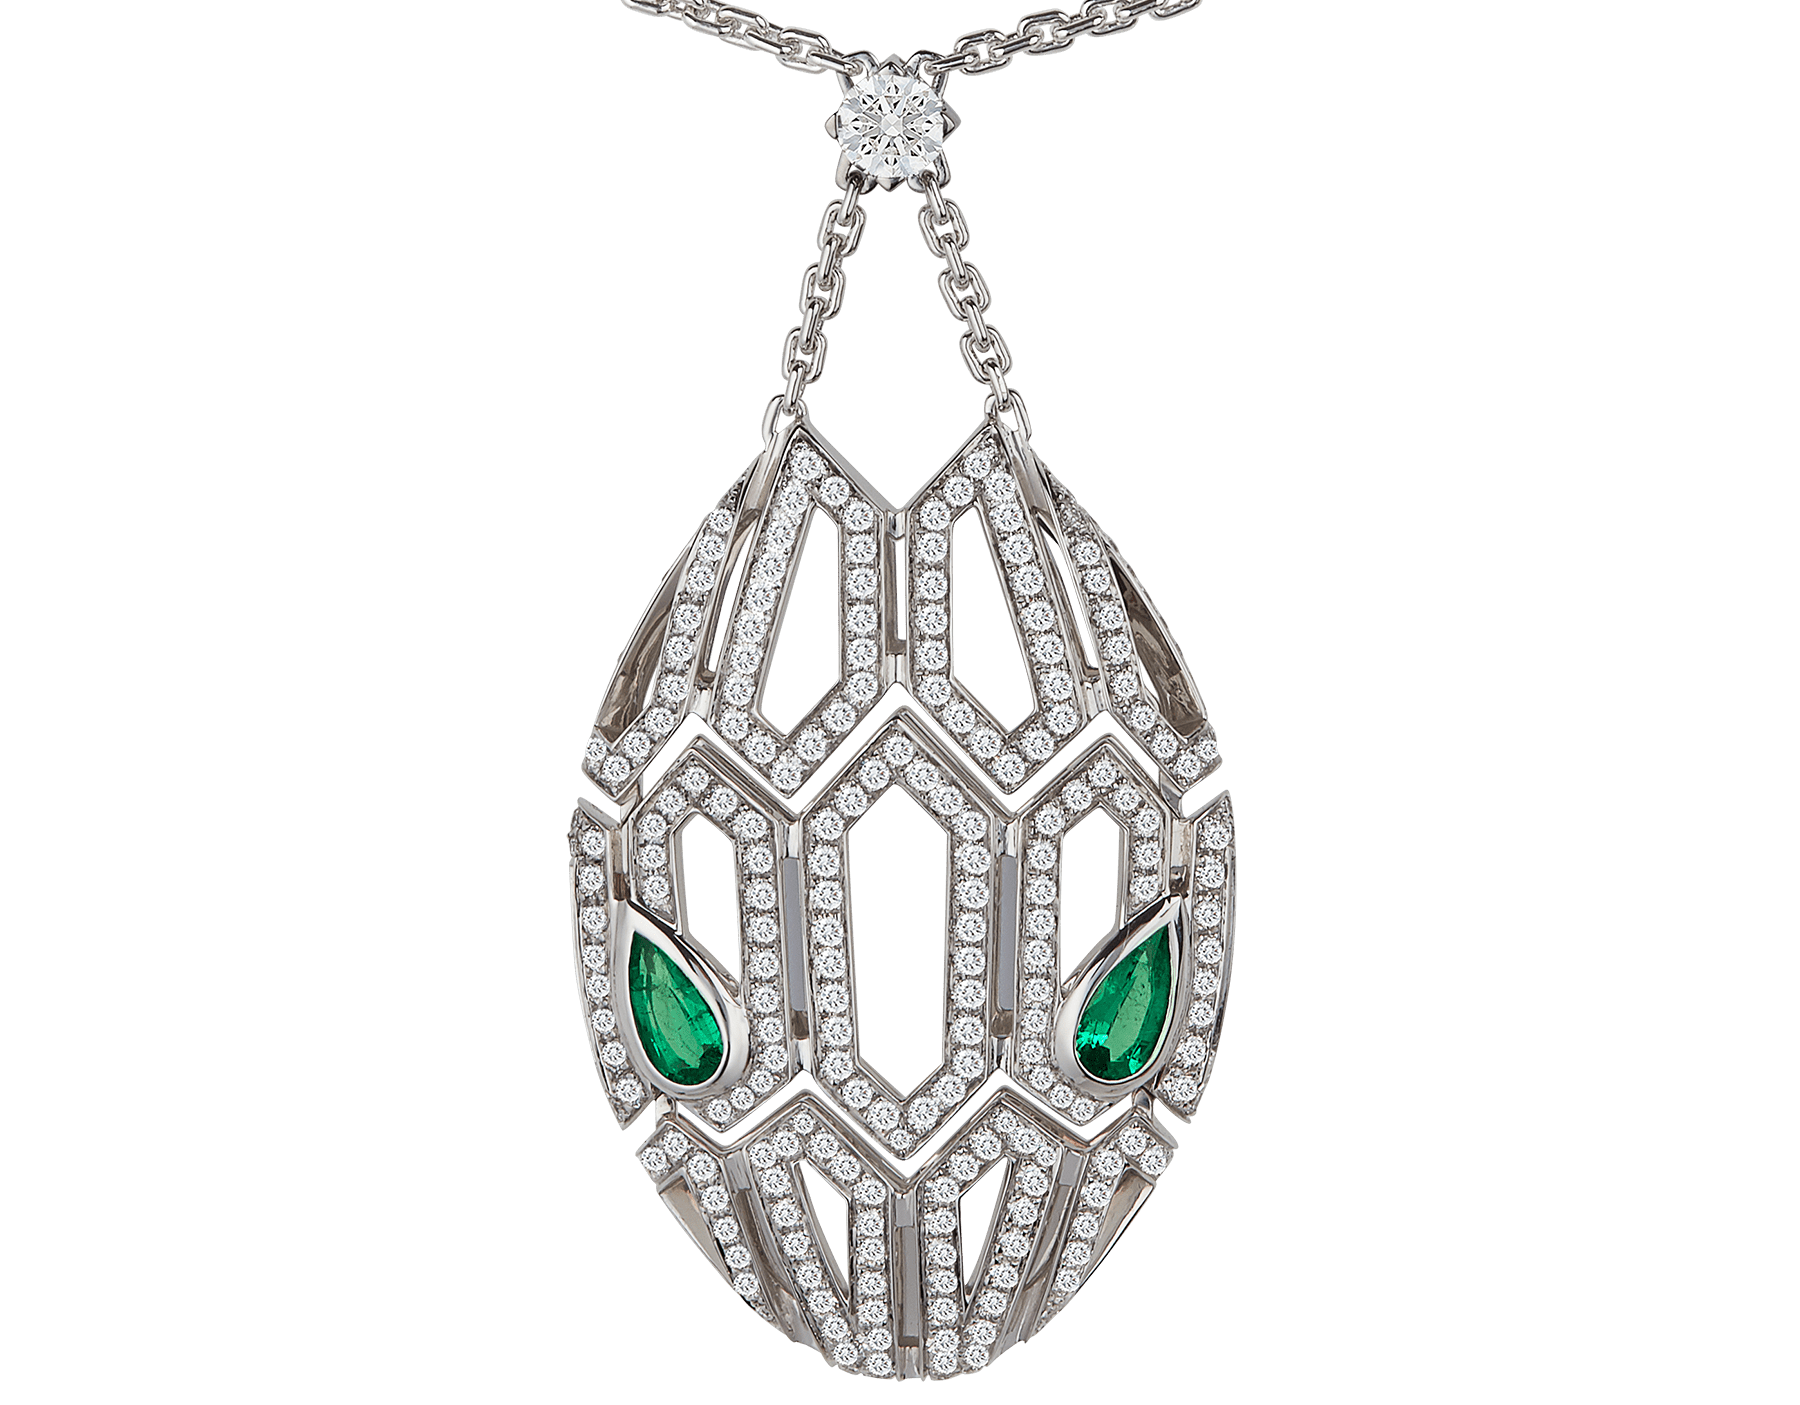 Serpenti necklace in 18 kt white gold, set with emerald eyes and pavé diamonds both on the chain and the pendant. 352752 image 3